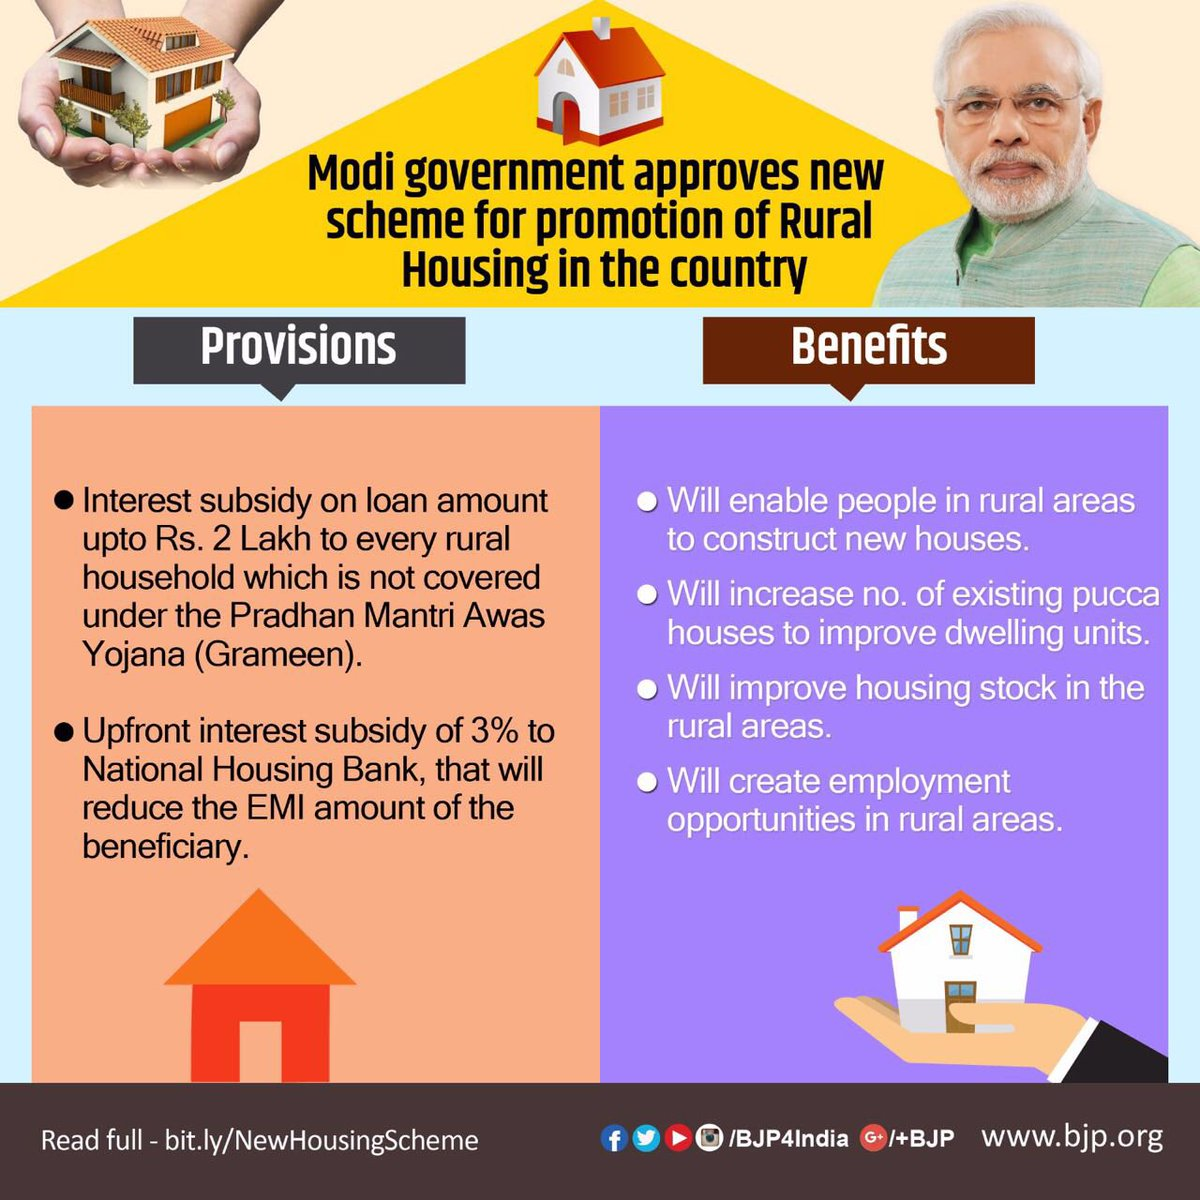 Government Apartments: Modi Government Approves New Rural Housing Scheme